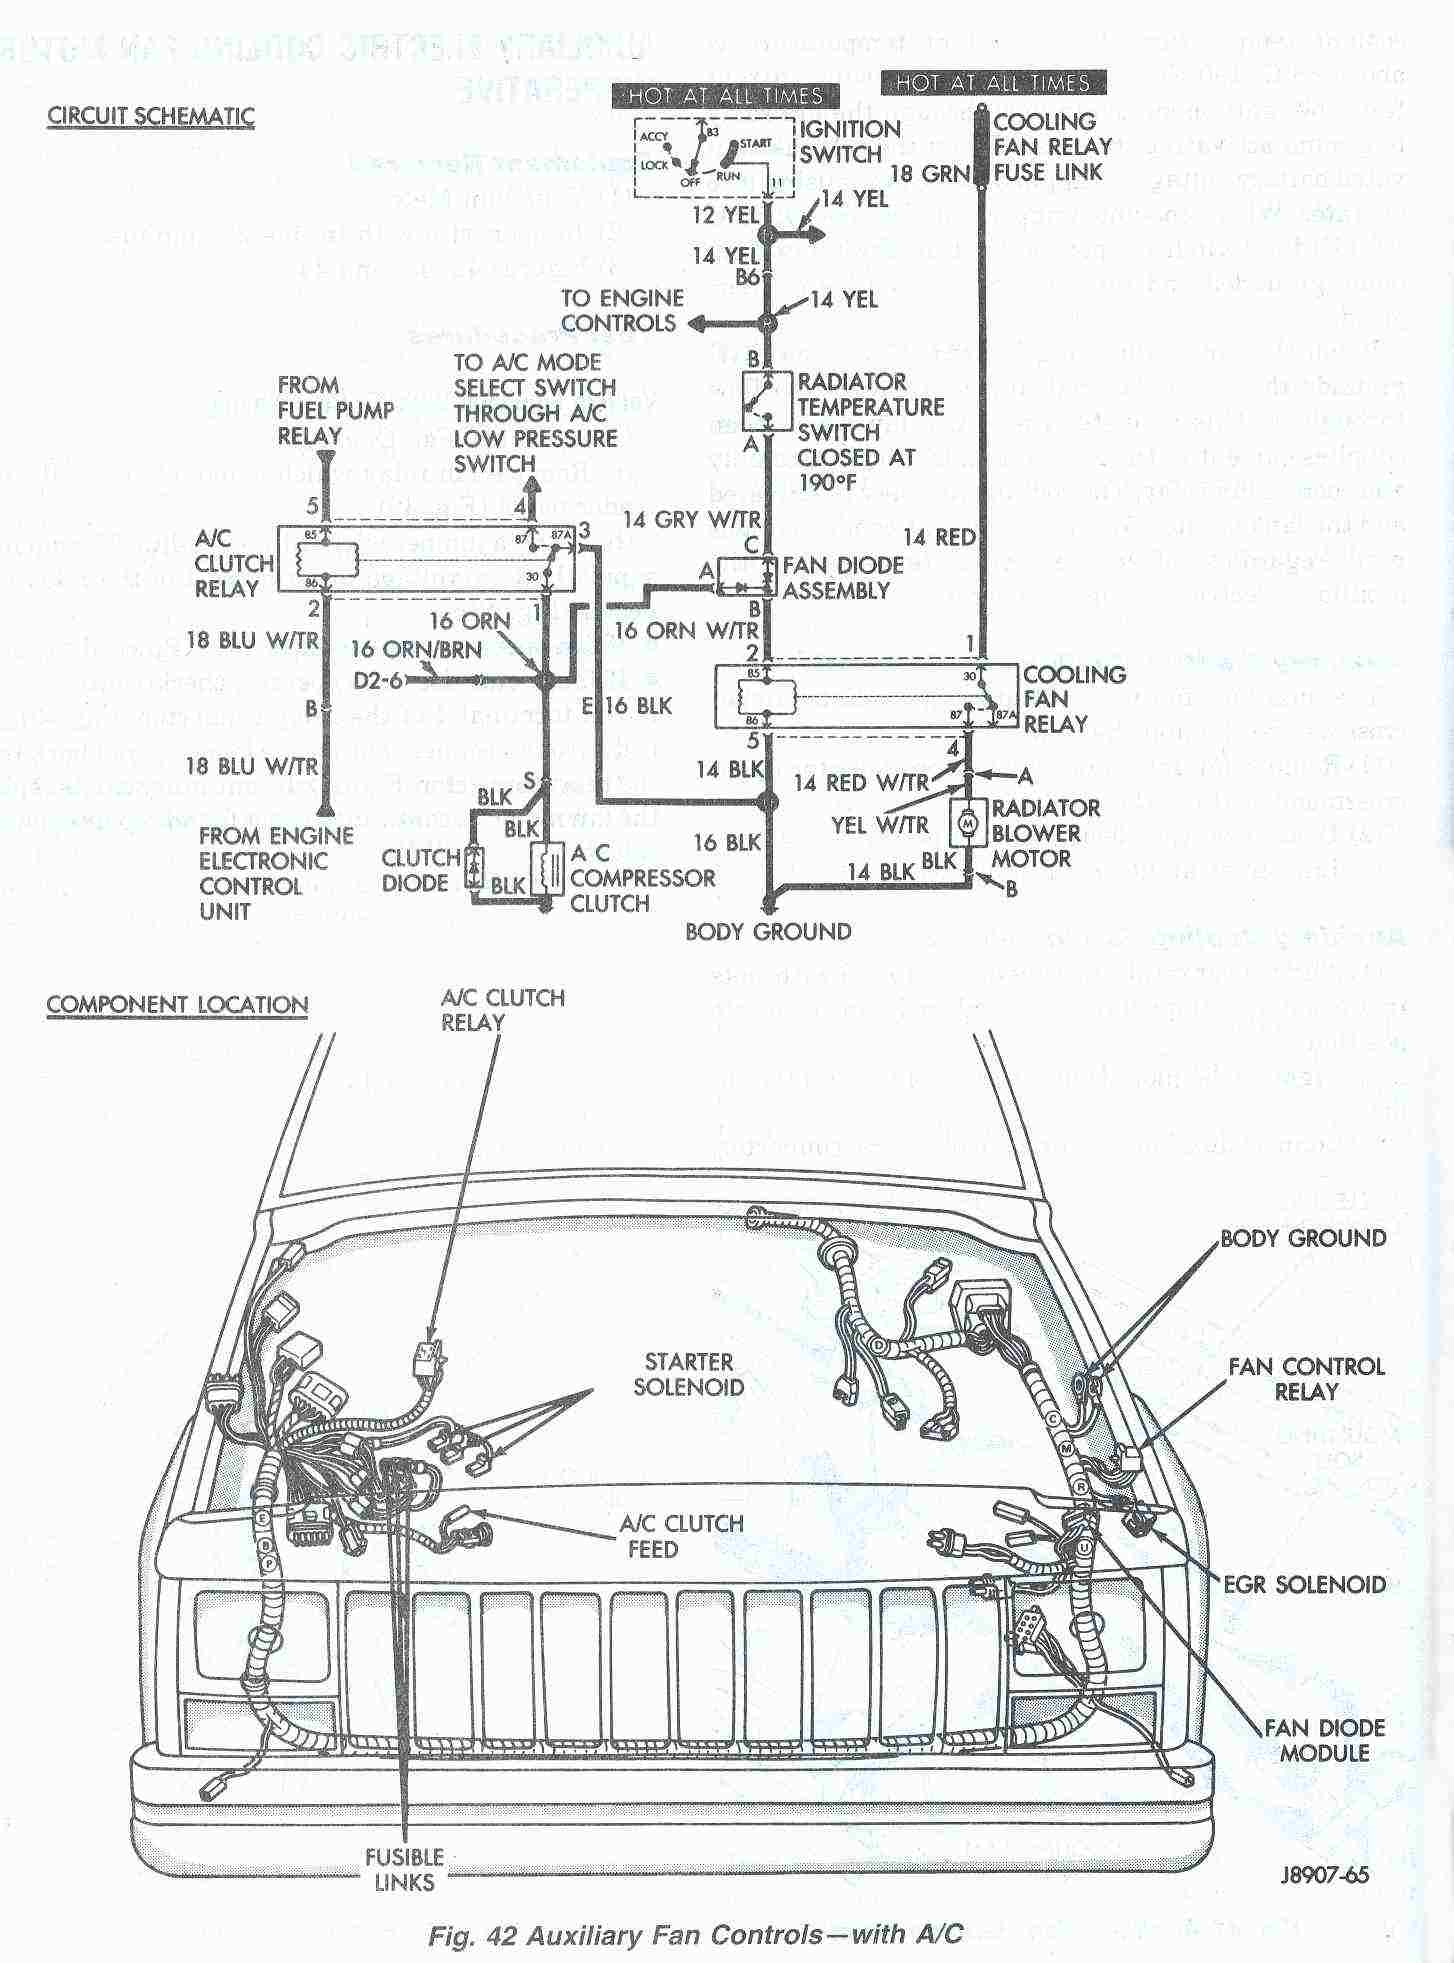 Auxiliary_Fan_Schematic_Fig_42 jeep cherokee cooling system electric cooling fan 88 jeep cherokee wiring diagram at webbmarketing.co